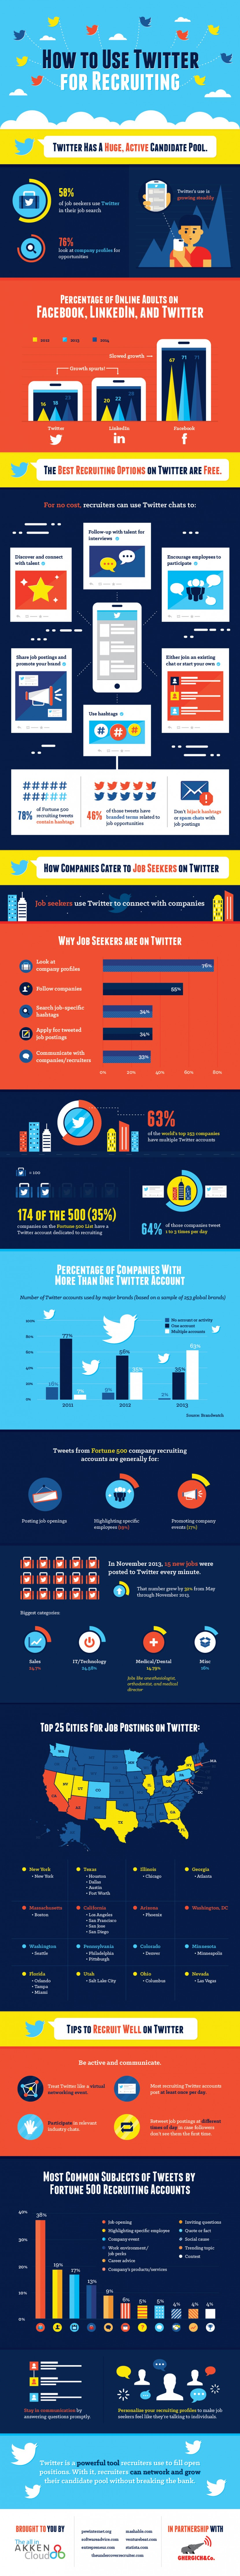 Infographie 224 - Recruiting with Twitter